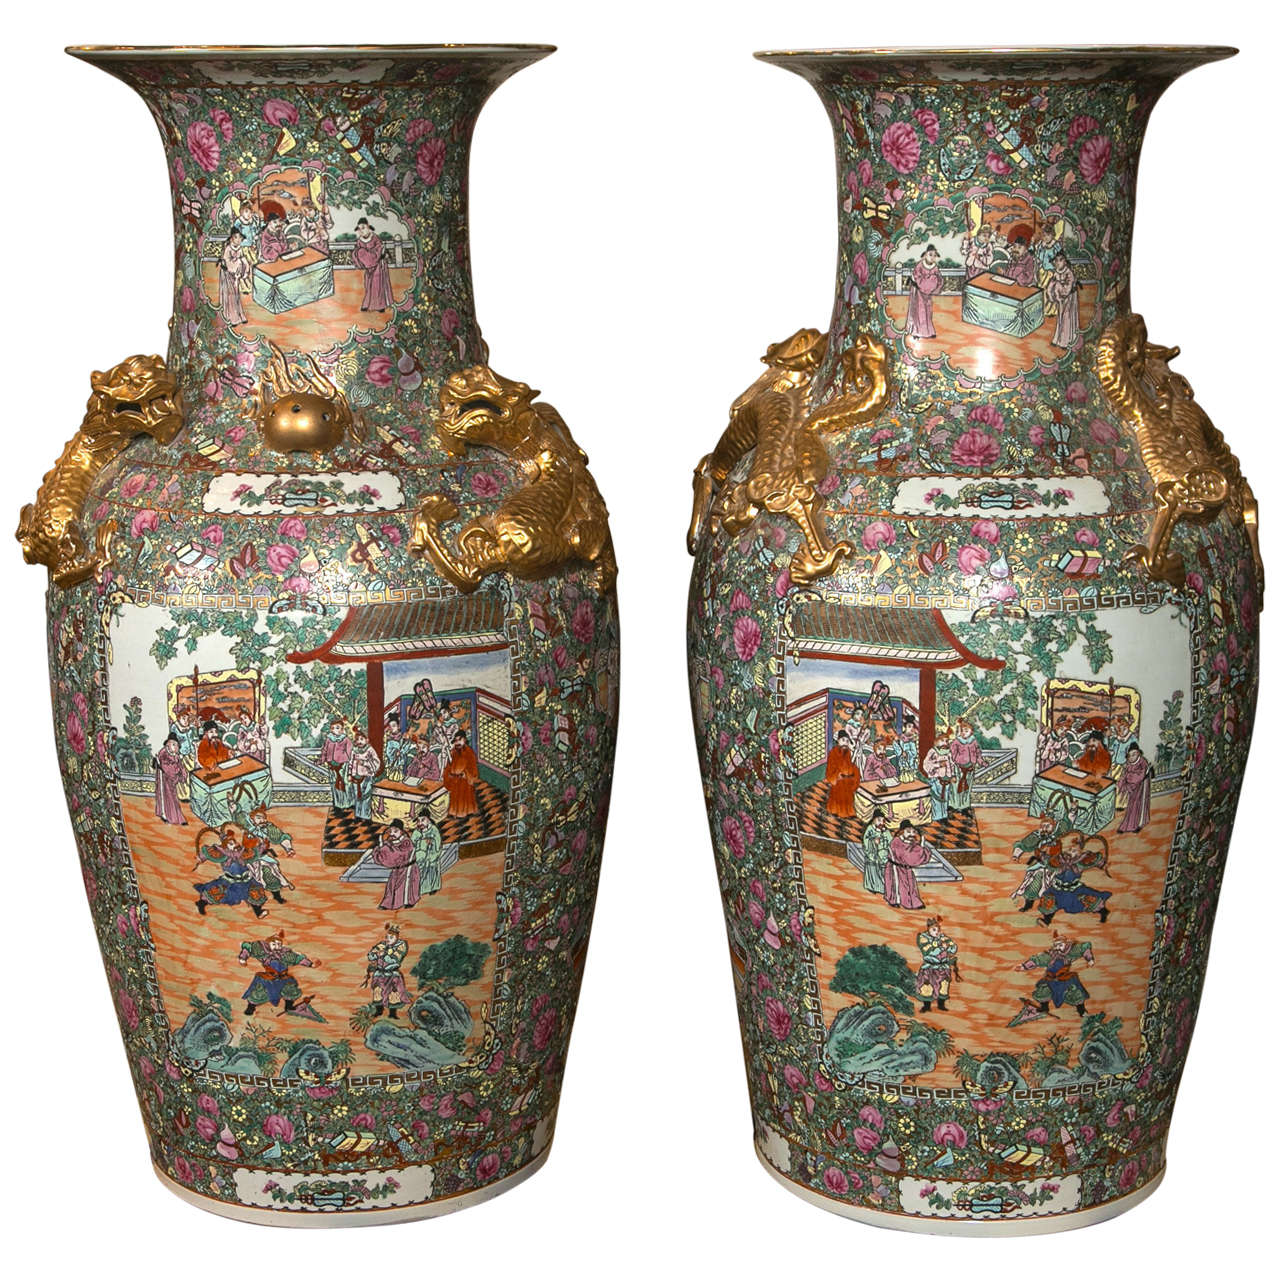 On sale now fabulous palatial pair of rose medallion export palatial pair of rose medallion export chinese vases for sale reviewsmspy